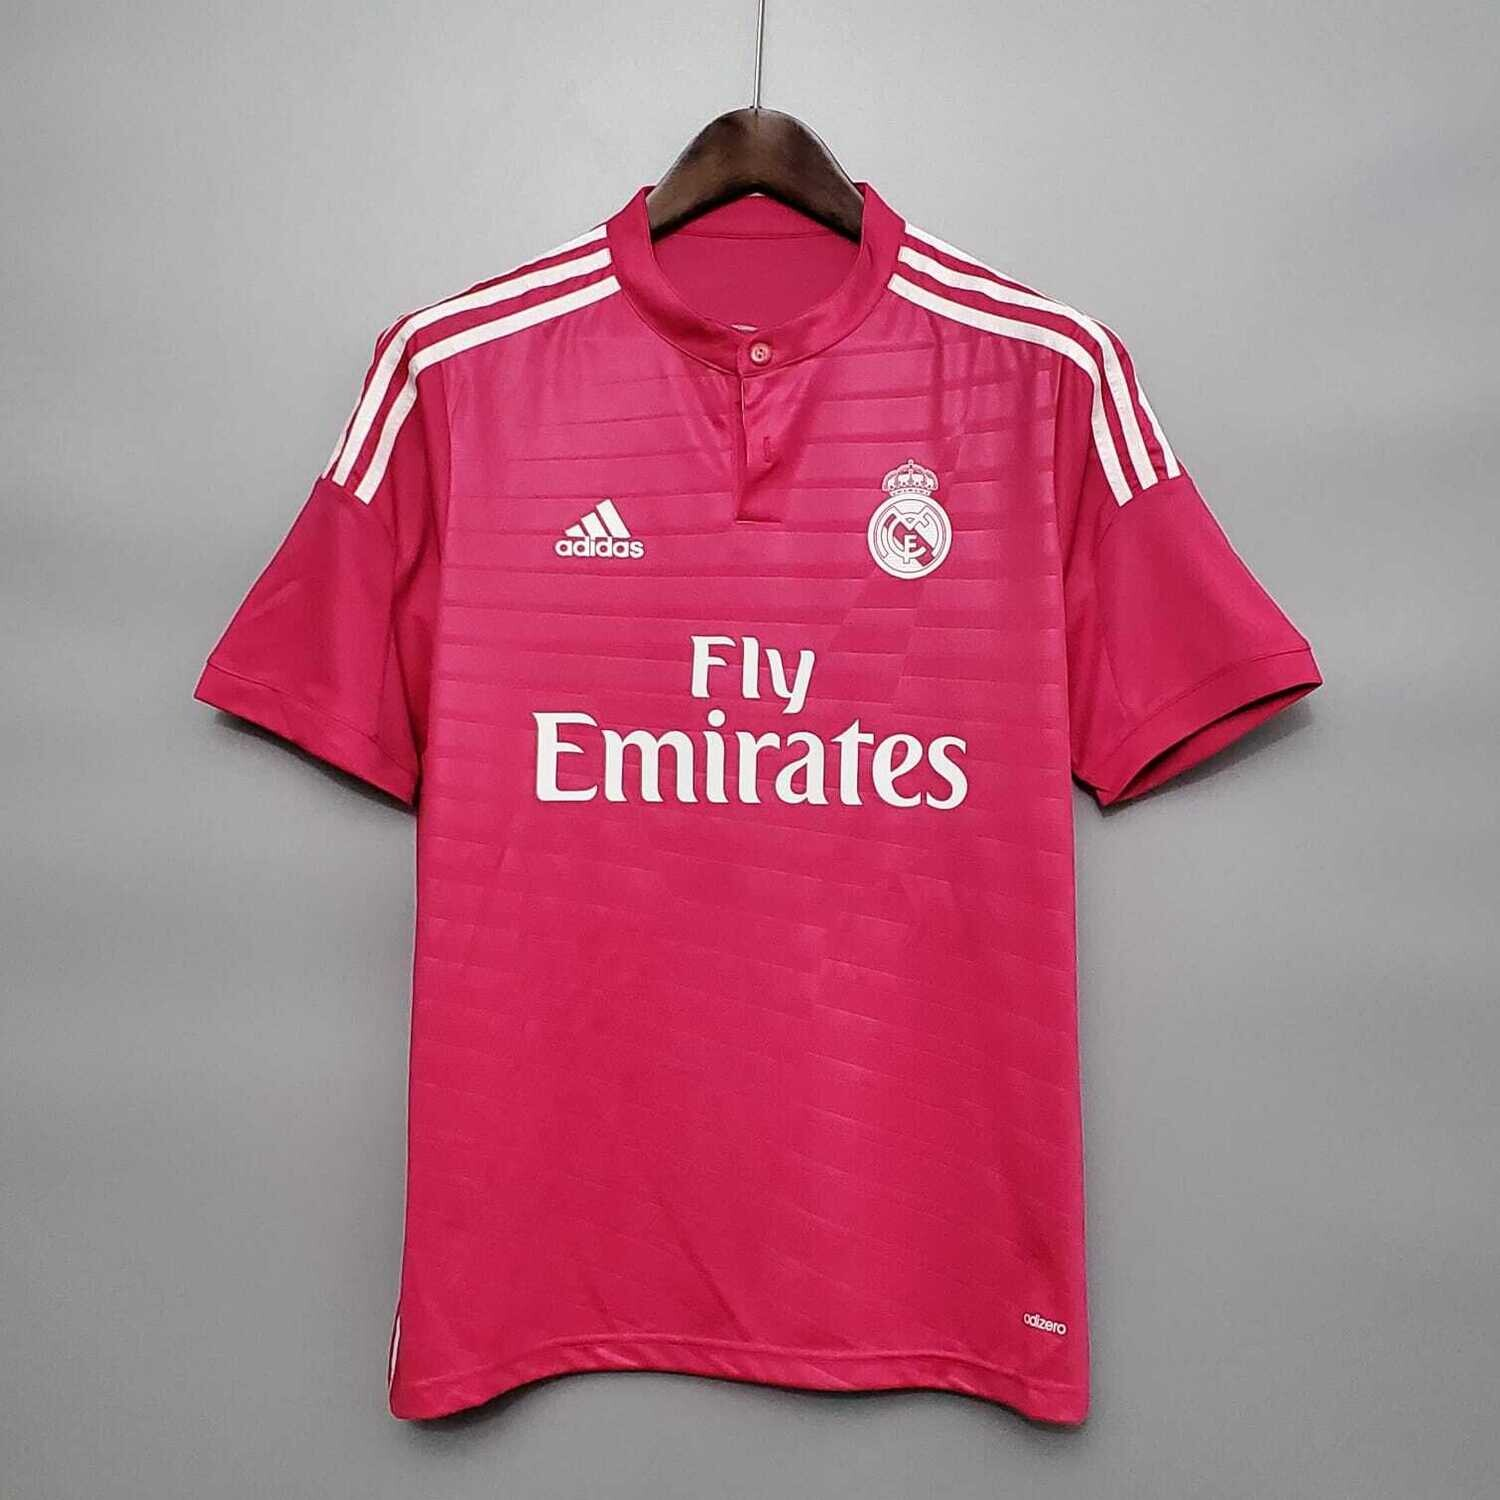 Real Madrid 2014-15 Away Jersey [Pre-paid Only]